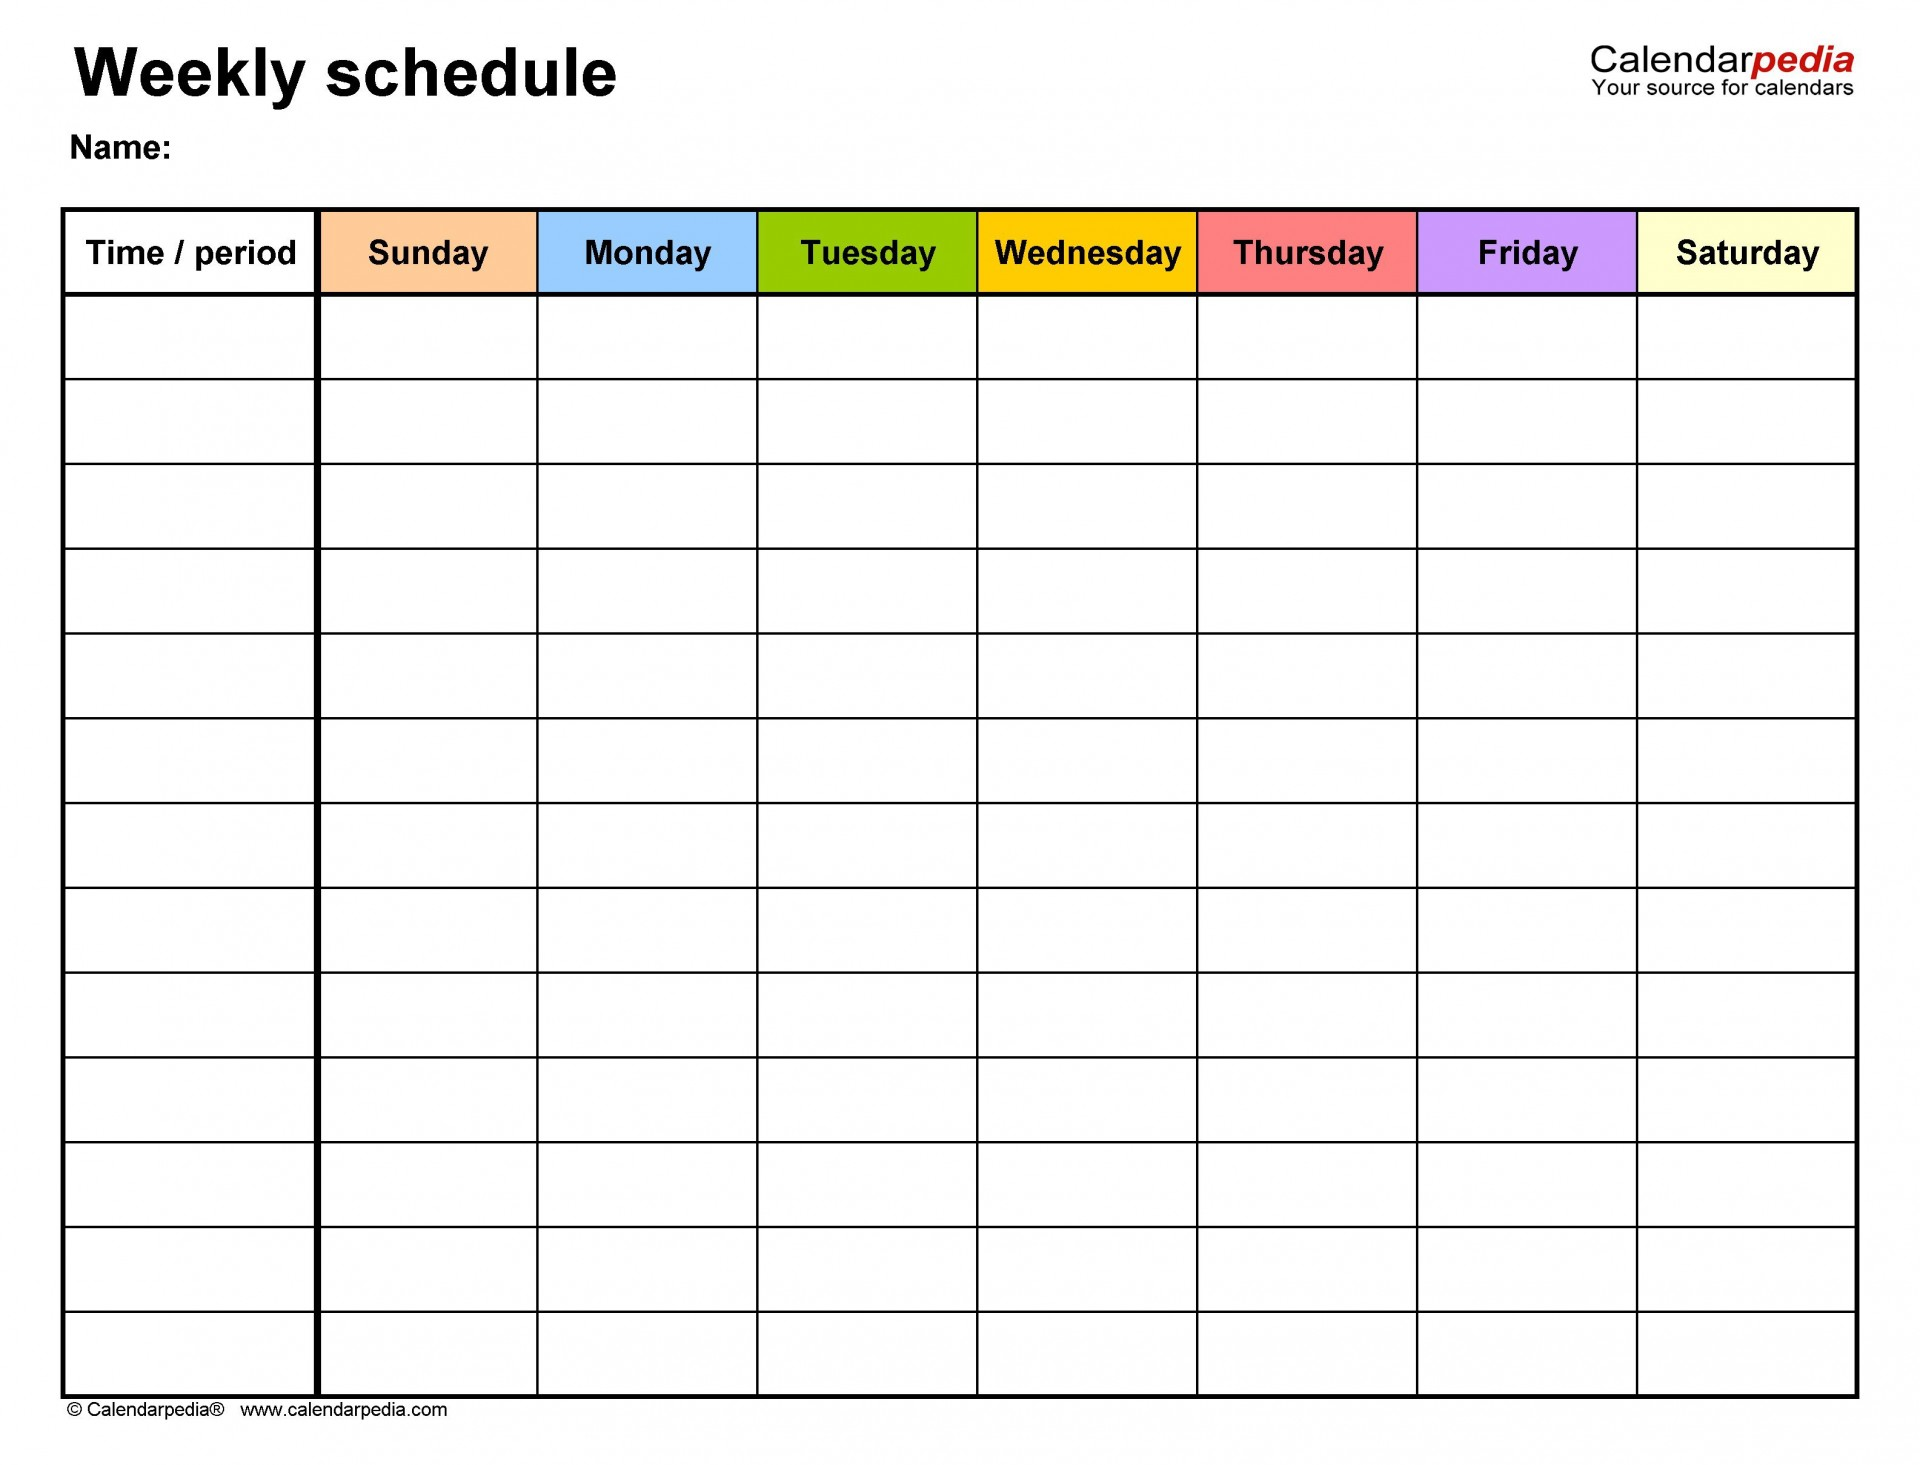 006 Top Weekly Schedule Template Pdf Image  With Time Study Work1920